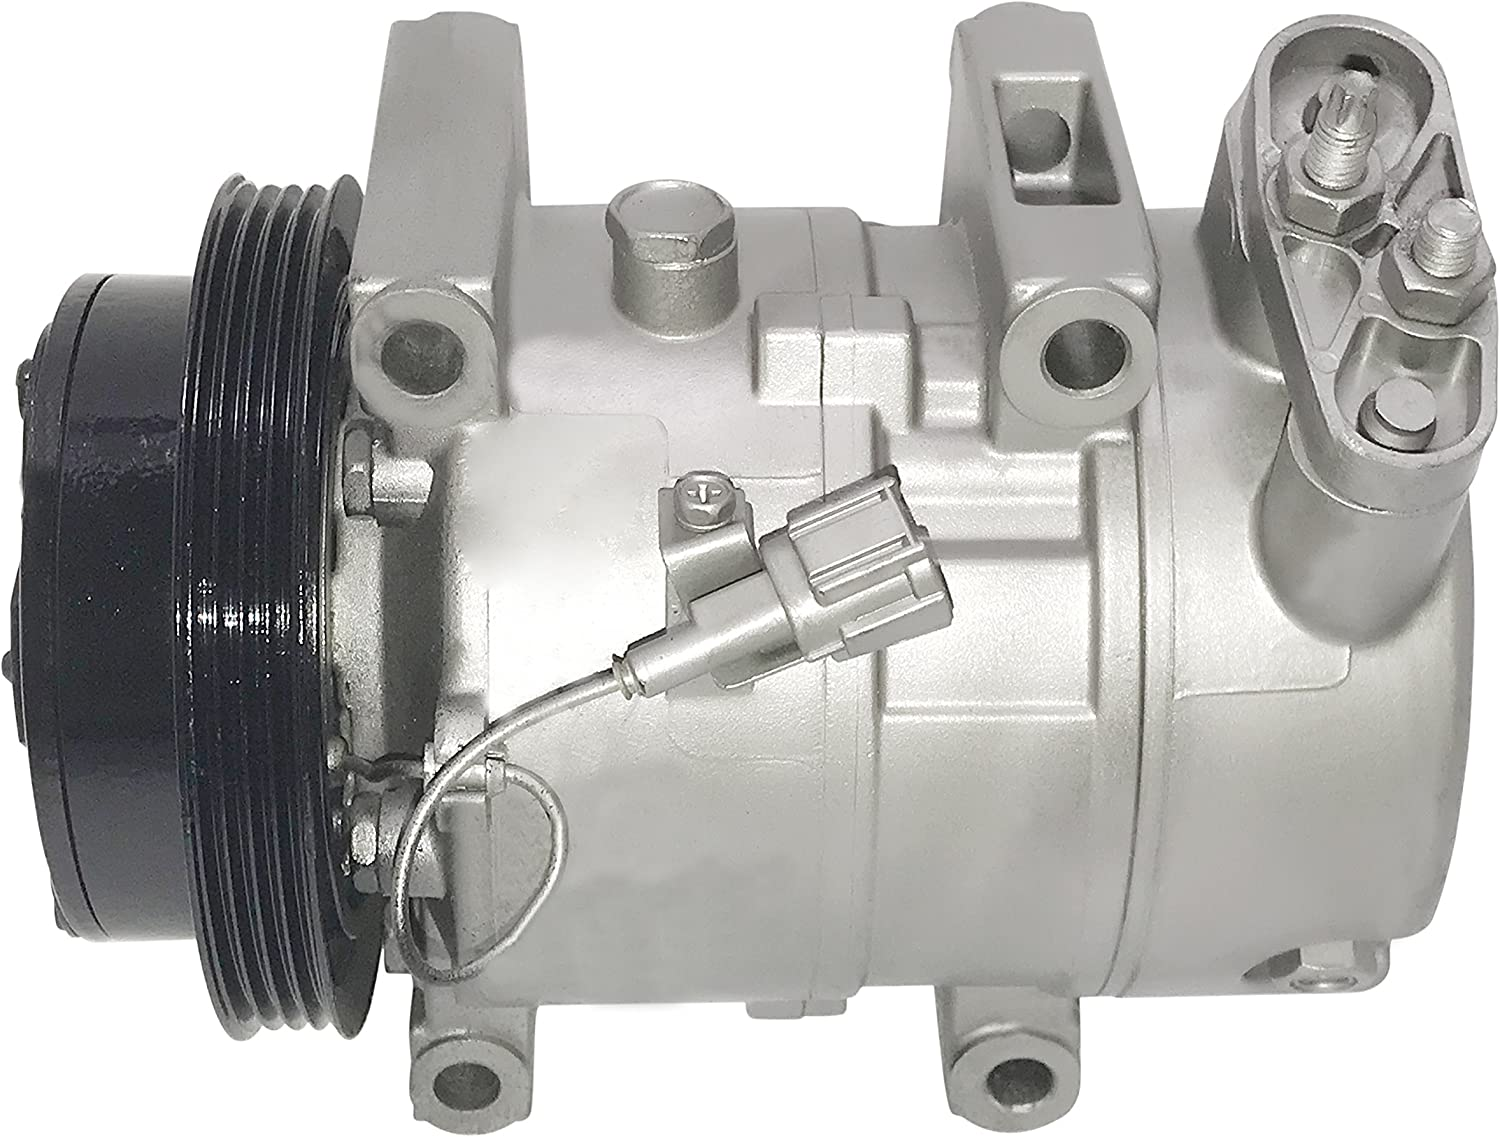 RYC Remanufactured AC All items free shipping Compressor and Safety and trust A Clutch FG435 C DOES NOT